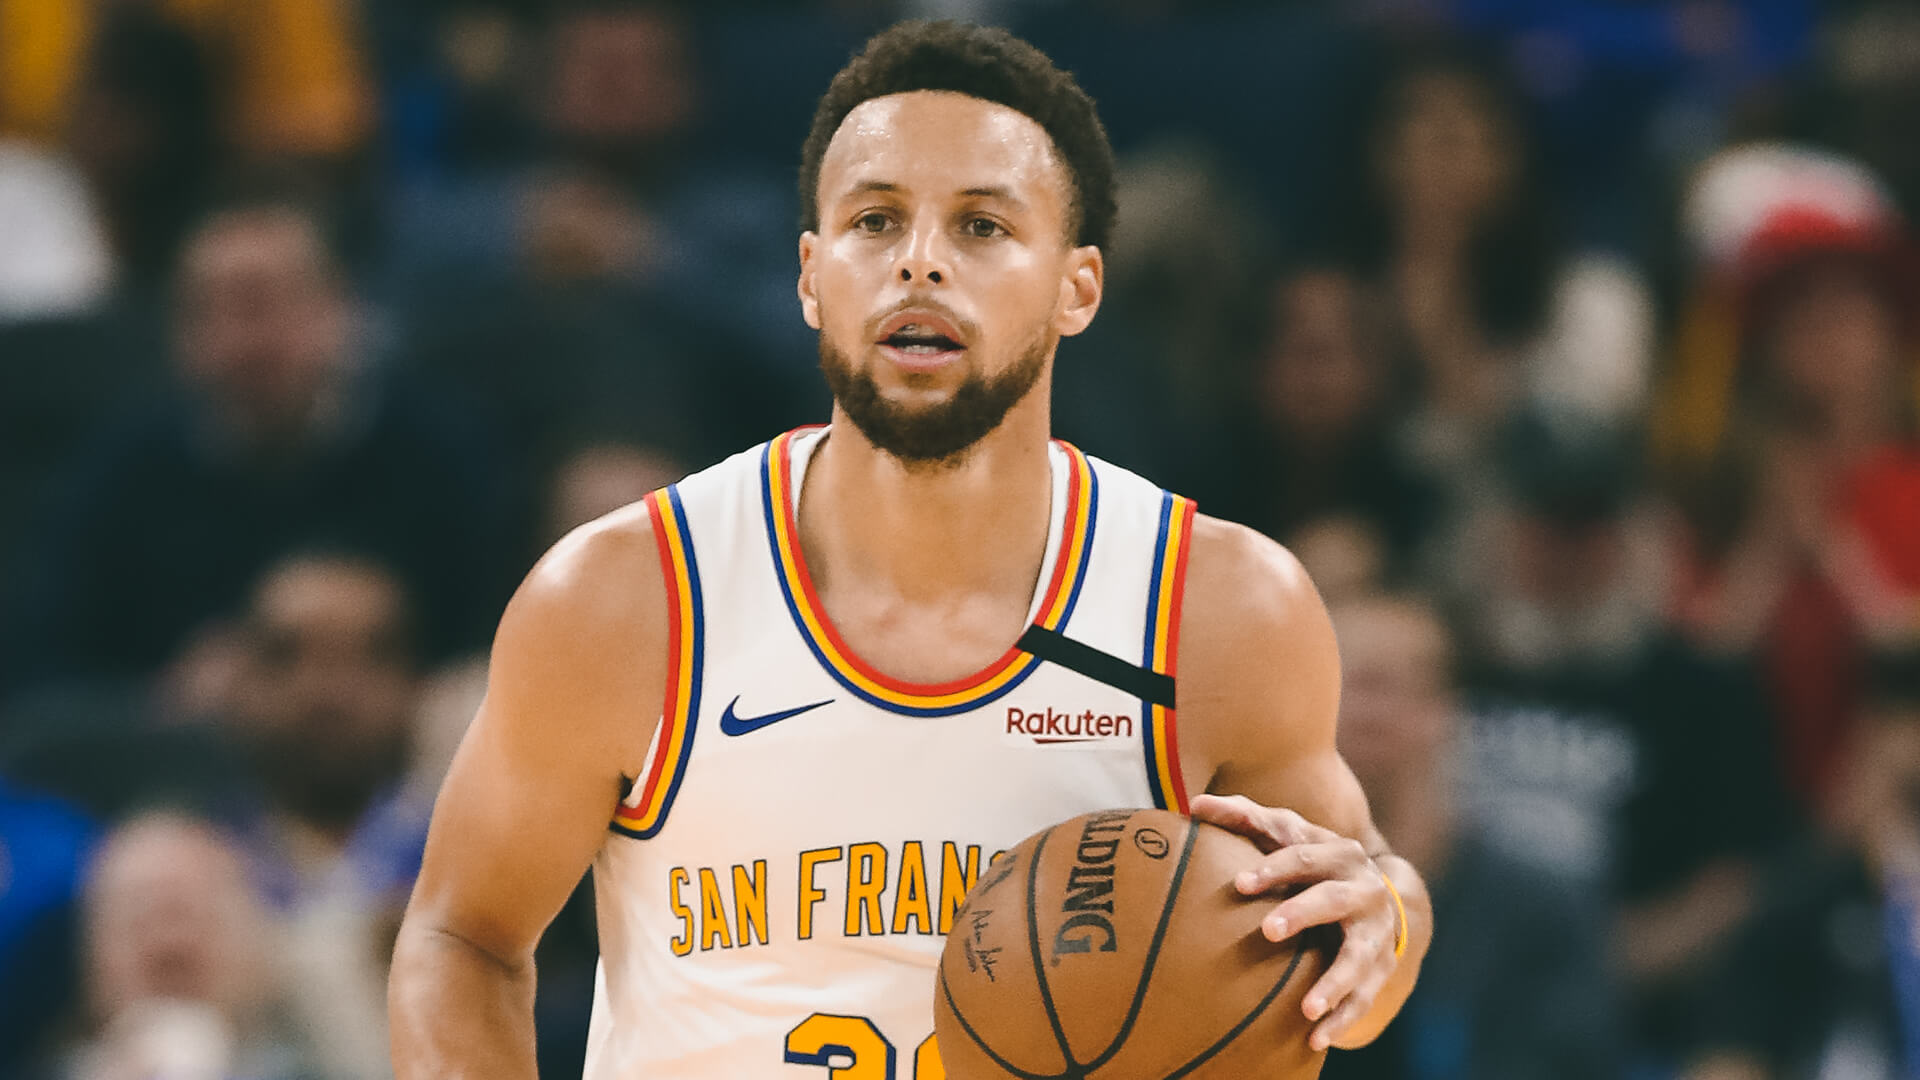 SAN FRANCISCO, CALIFORNIA - MARCH 05:  Stephen Curry #30 of the Golden State Warriors in action against the Toronto Raptors at Chase Center on March 05, 2020 in San Francisco, California.